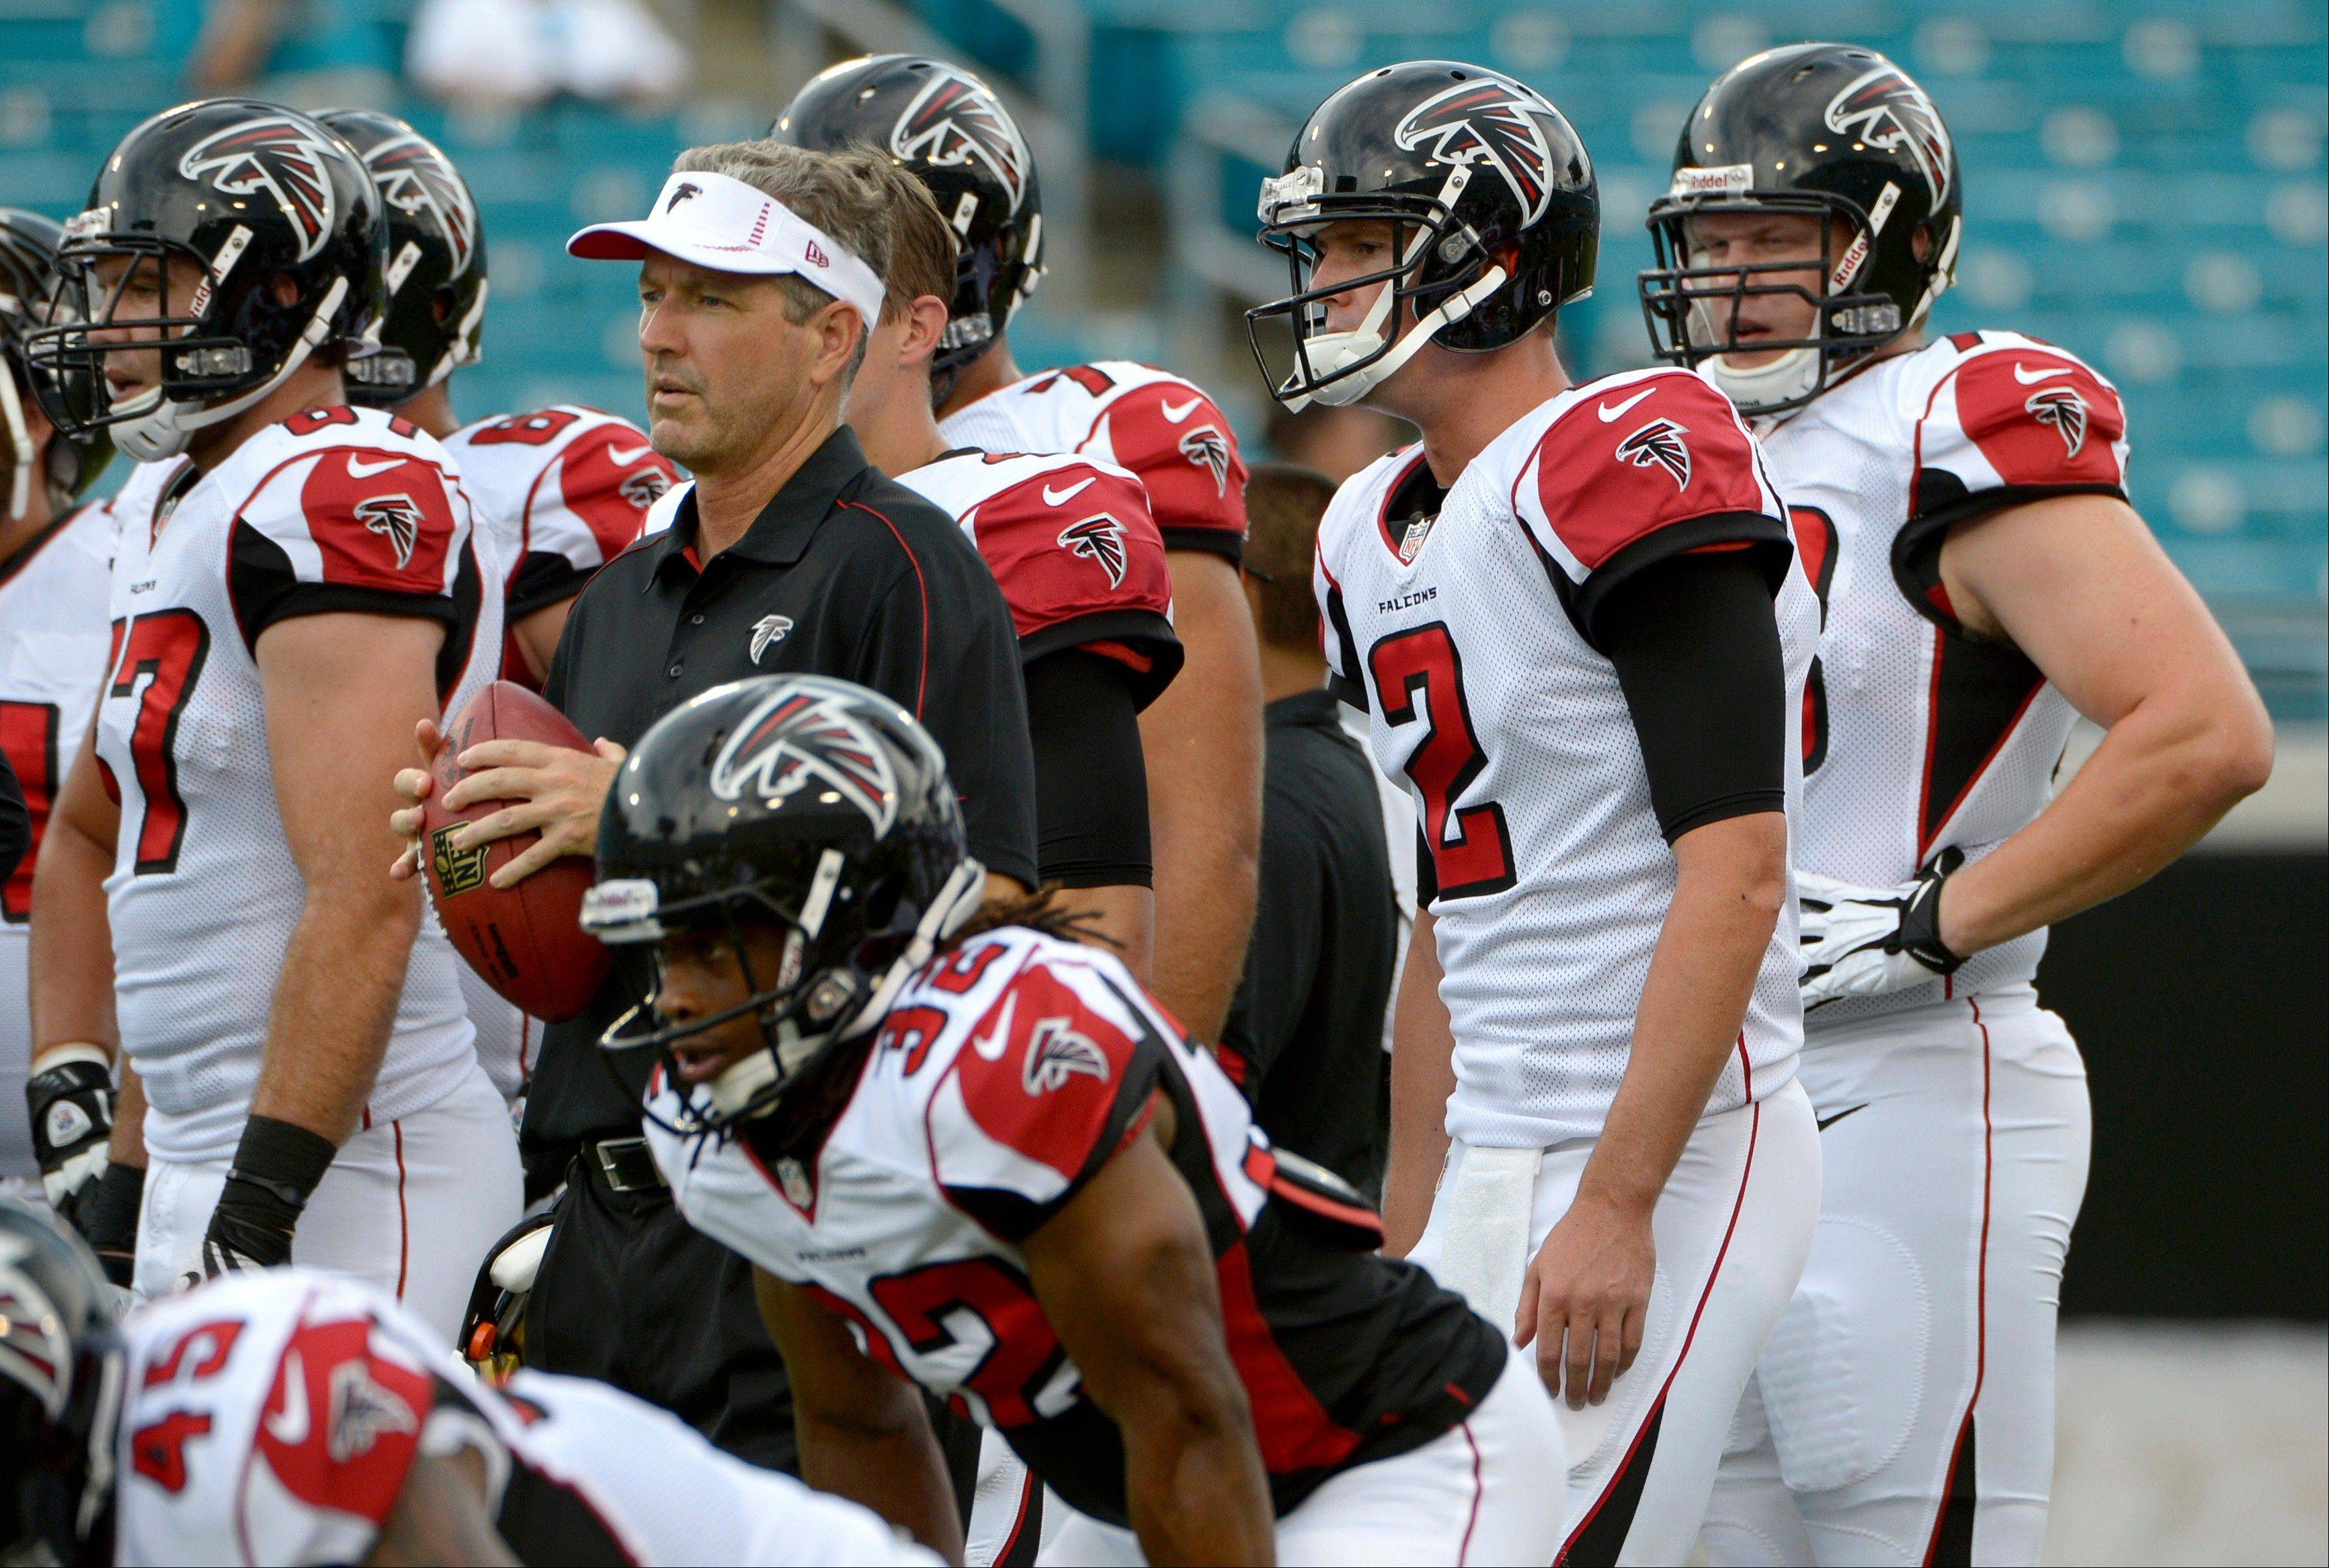 The Seattle Seahawks are favored in their game this weekend with Atlanta, but Mike North likes the Falcons.